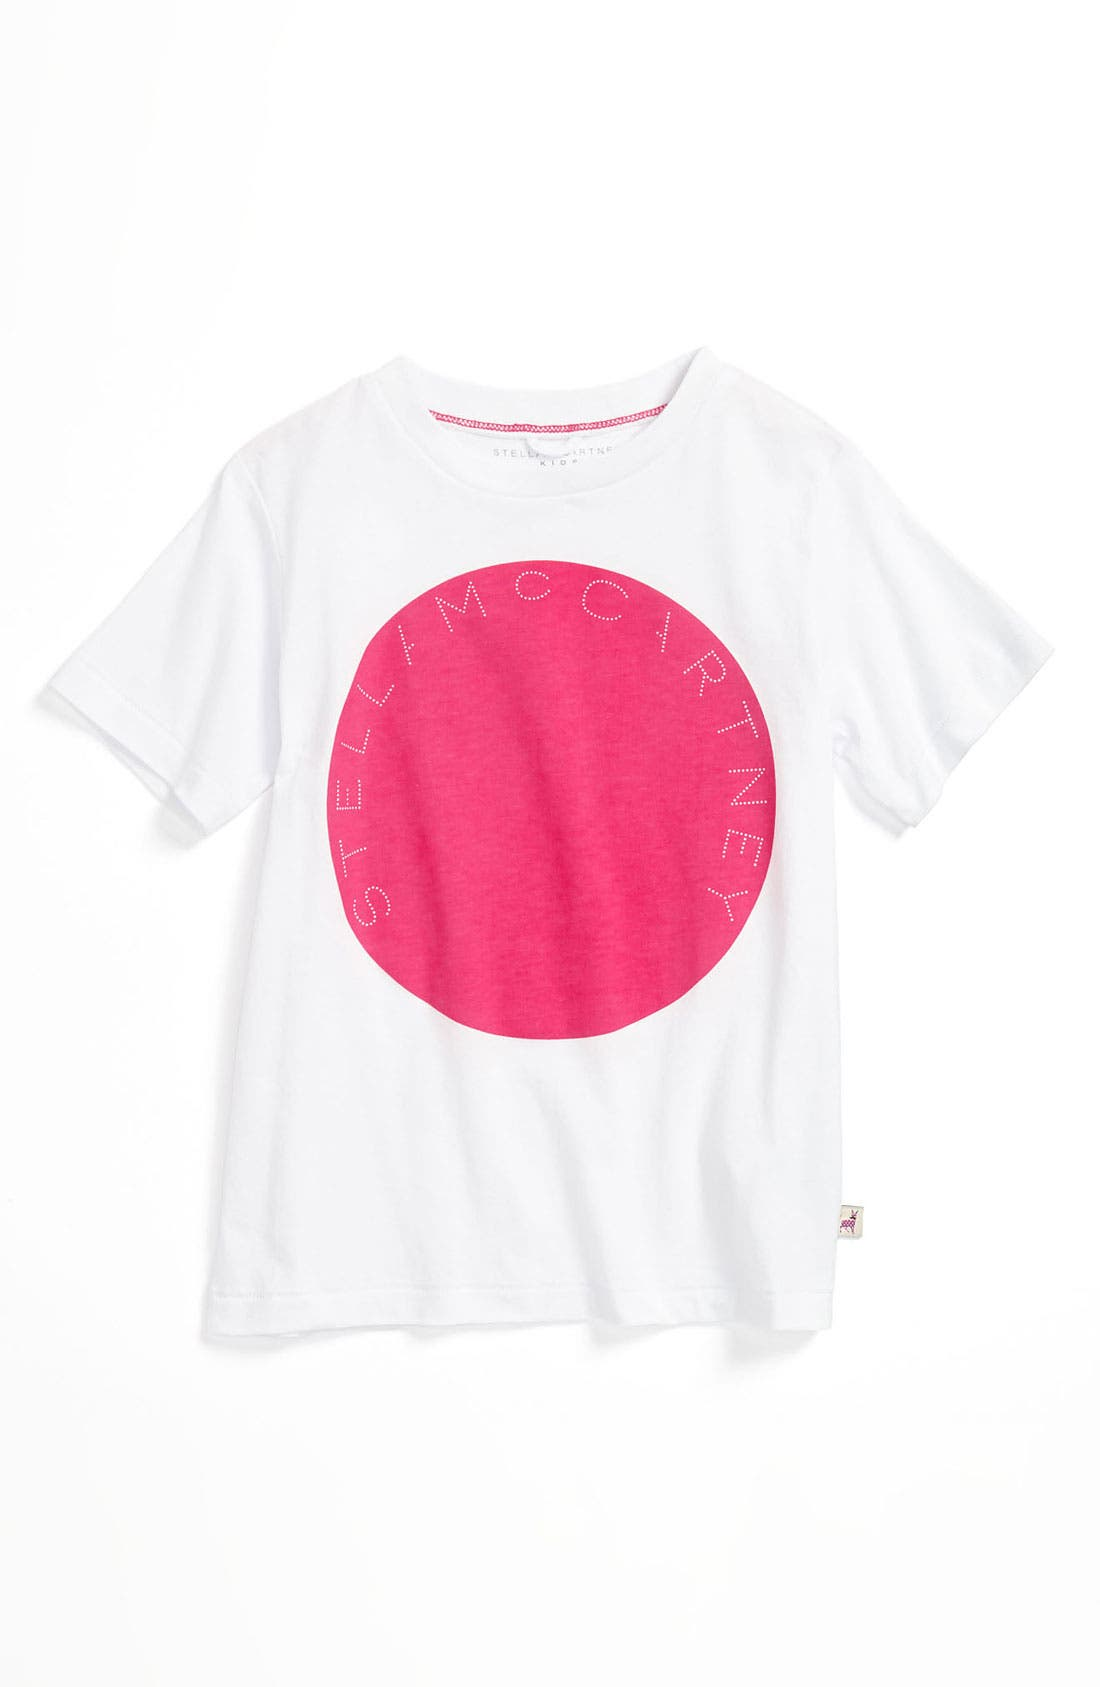 Alternate Image 1 Selected - Stella McCartney Kids 'Lawson' Tee (Toddler, Little Girls & Big Girls)